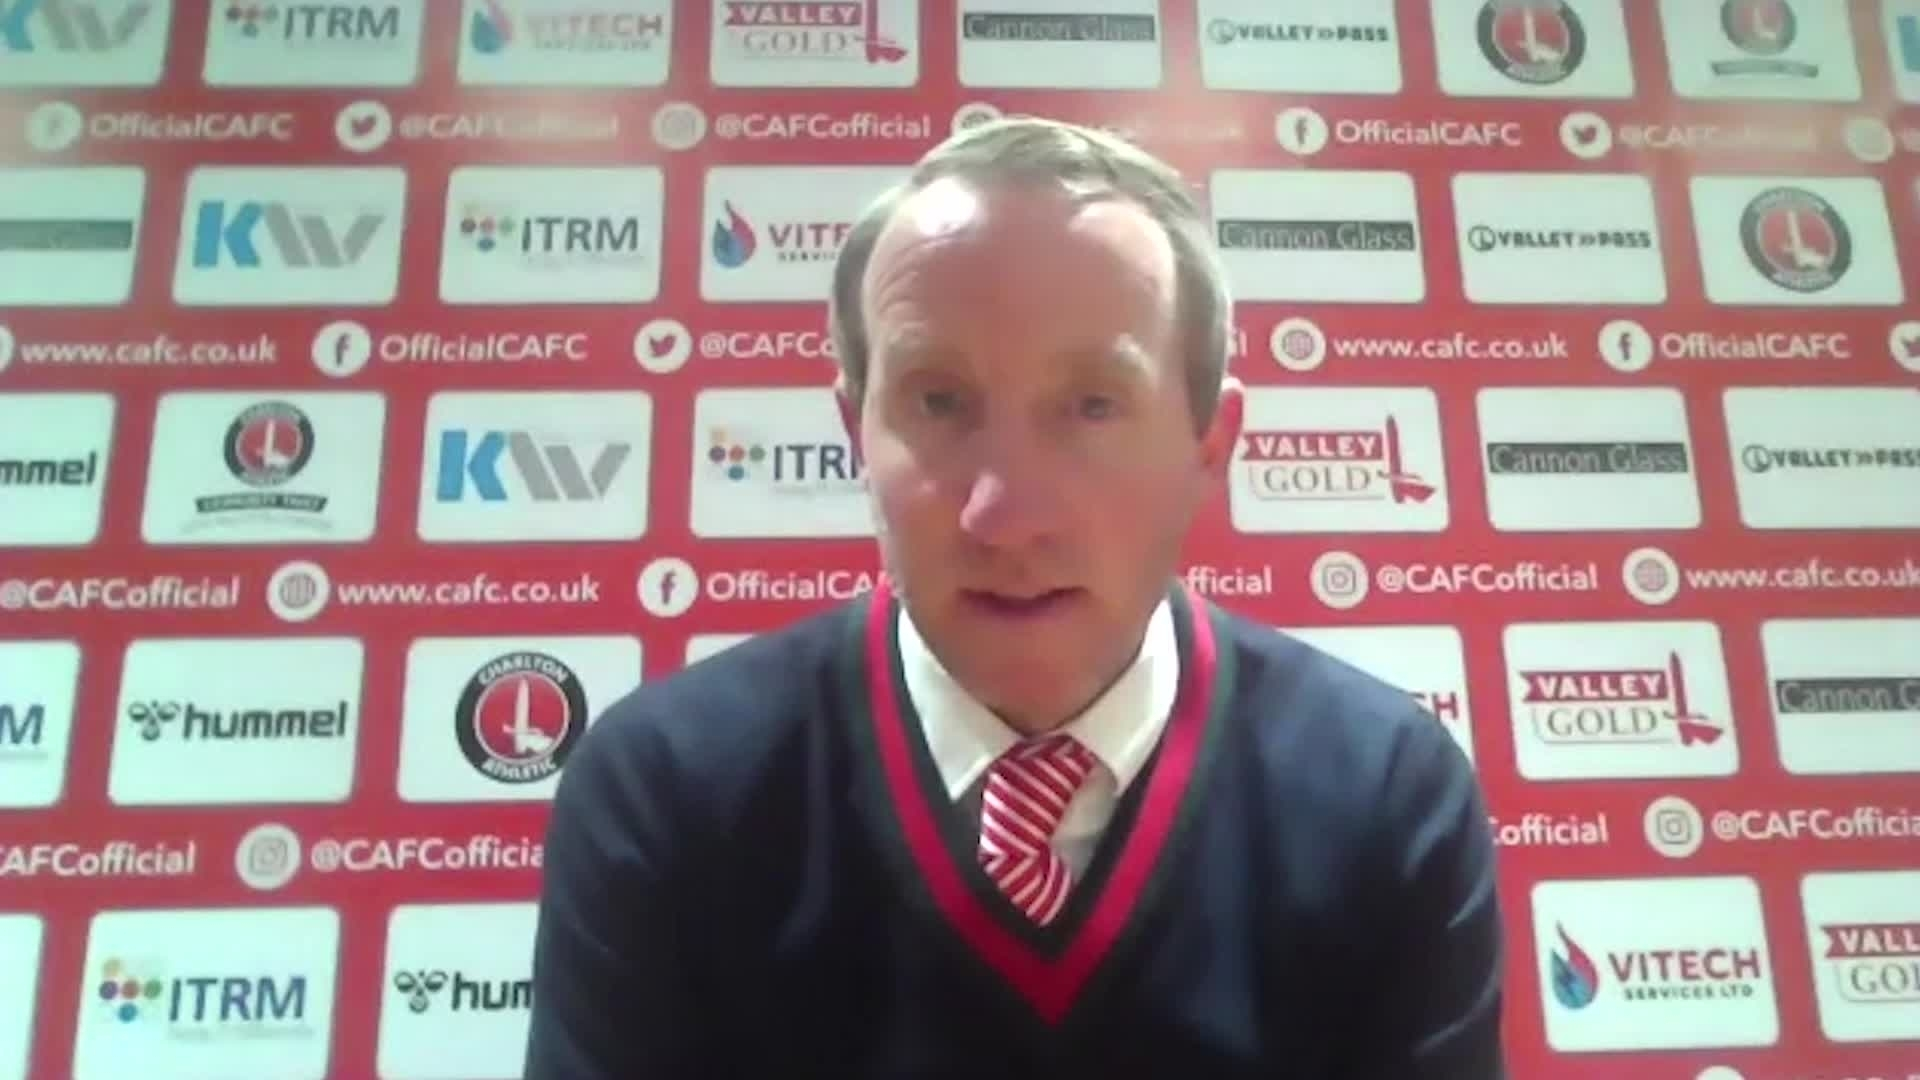 POST-MATCH | Lee Bowyer's post-Swindon Town press conference (January 2021)